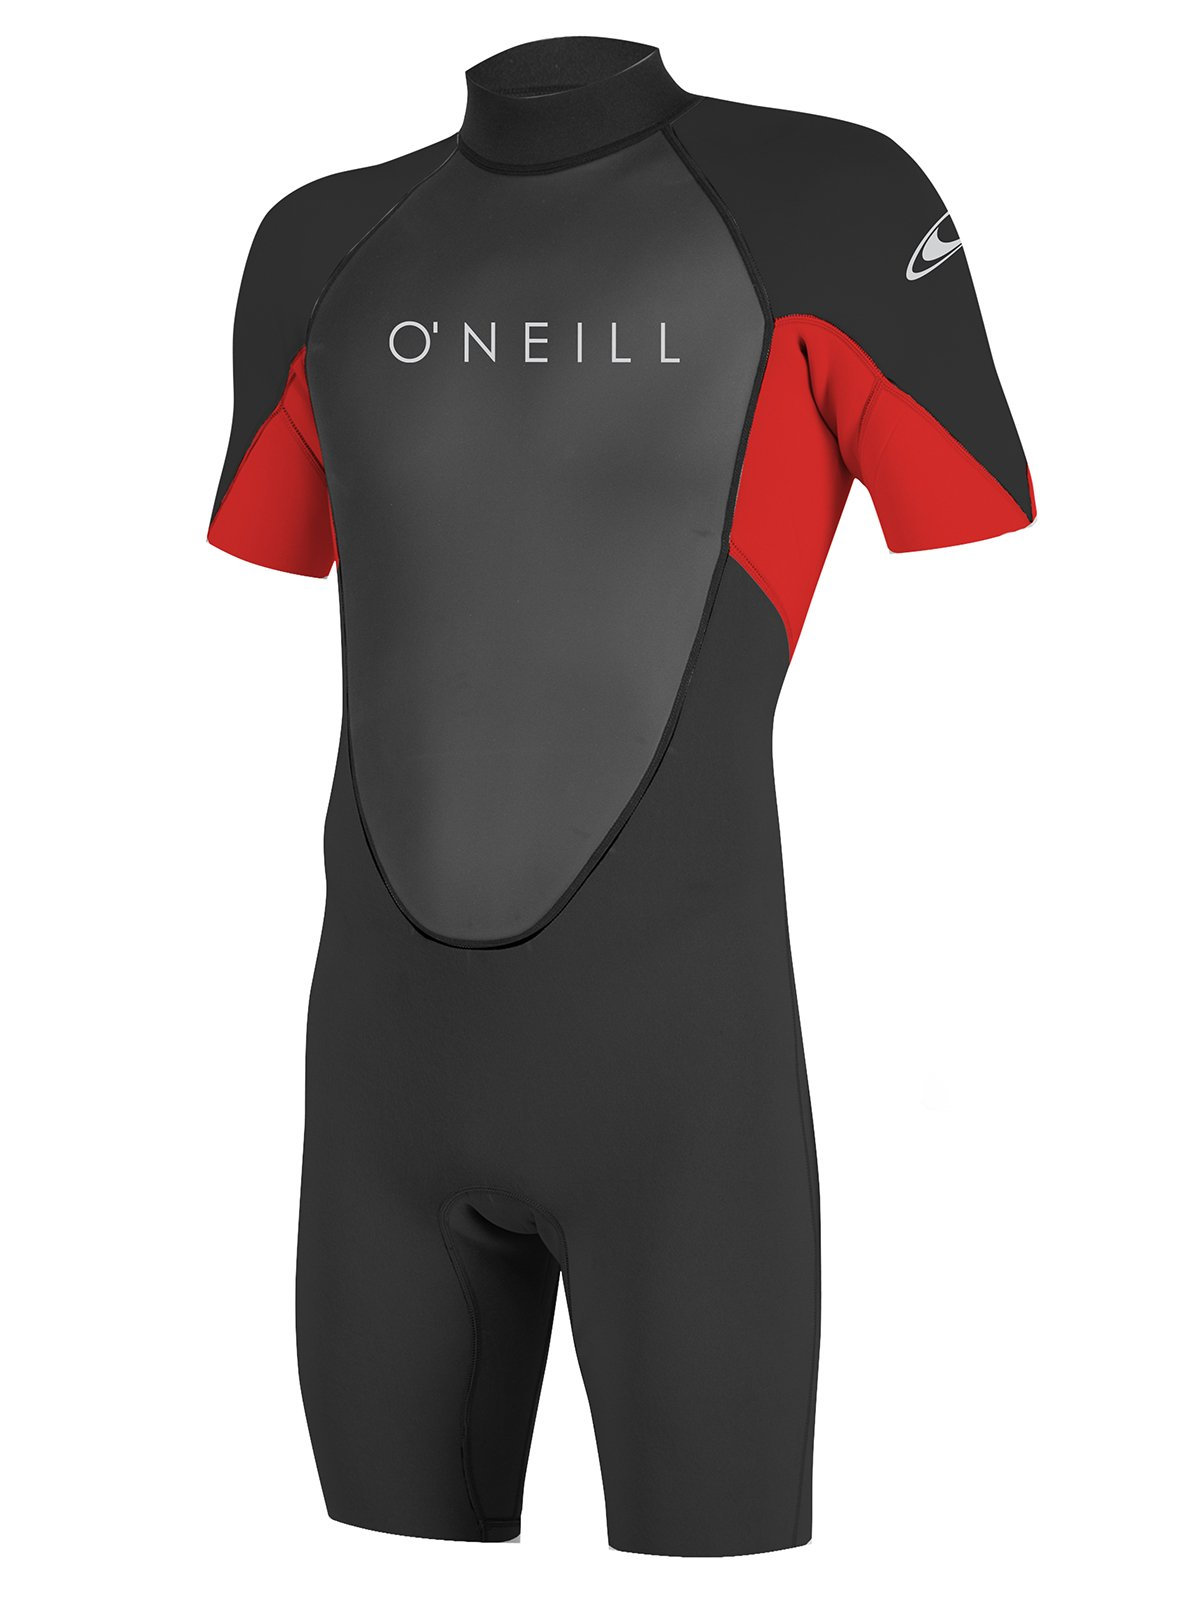 O'Neill Reactor-2 men's spring S Black/red (5124A)